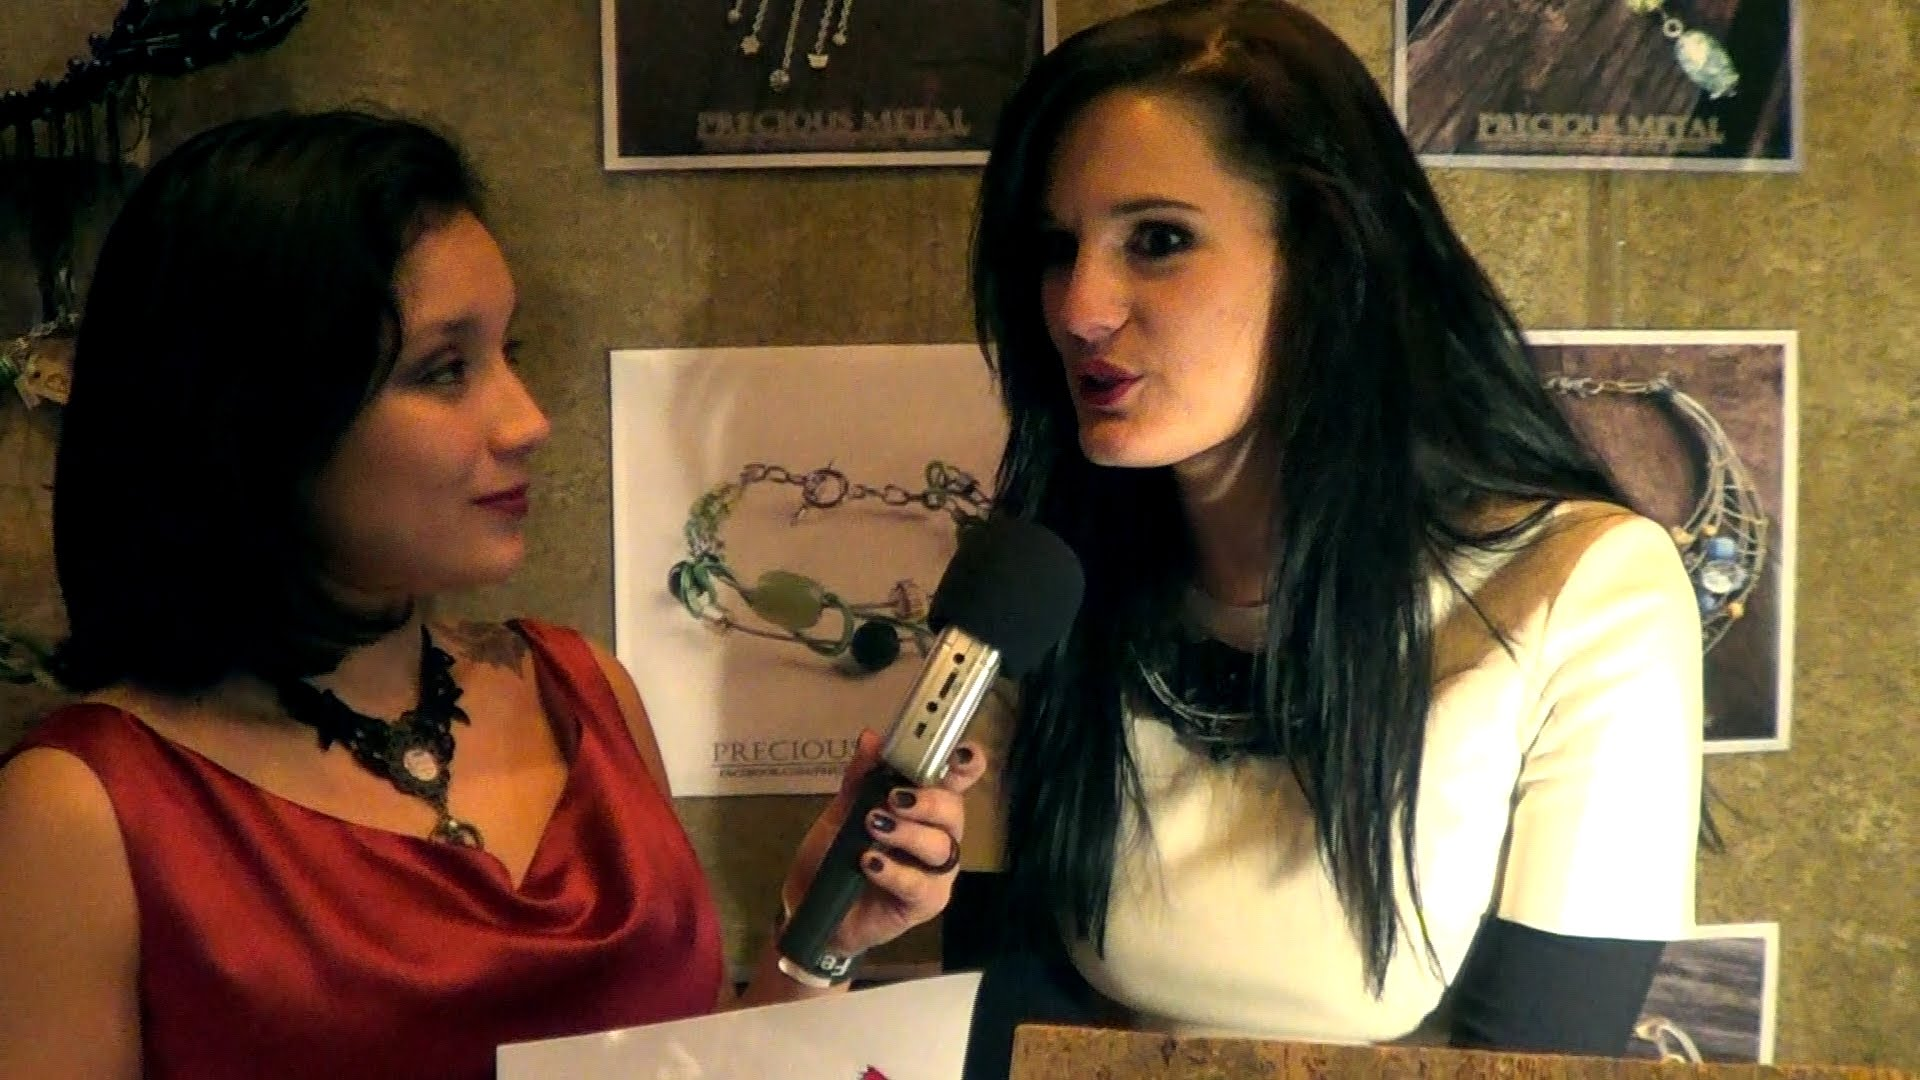 Xandria: Interview with Dianne van Giersbergen at FemME 2015